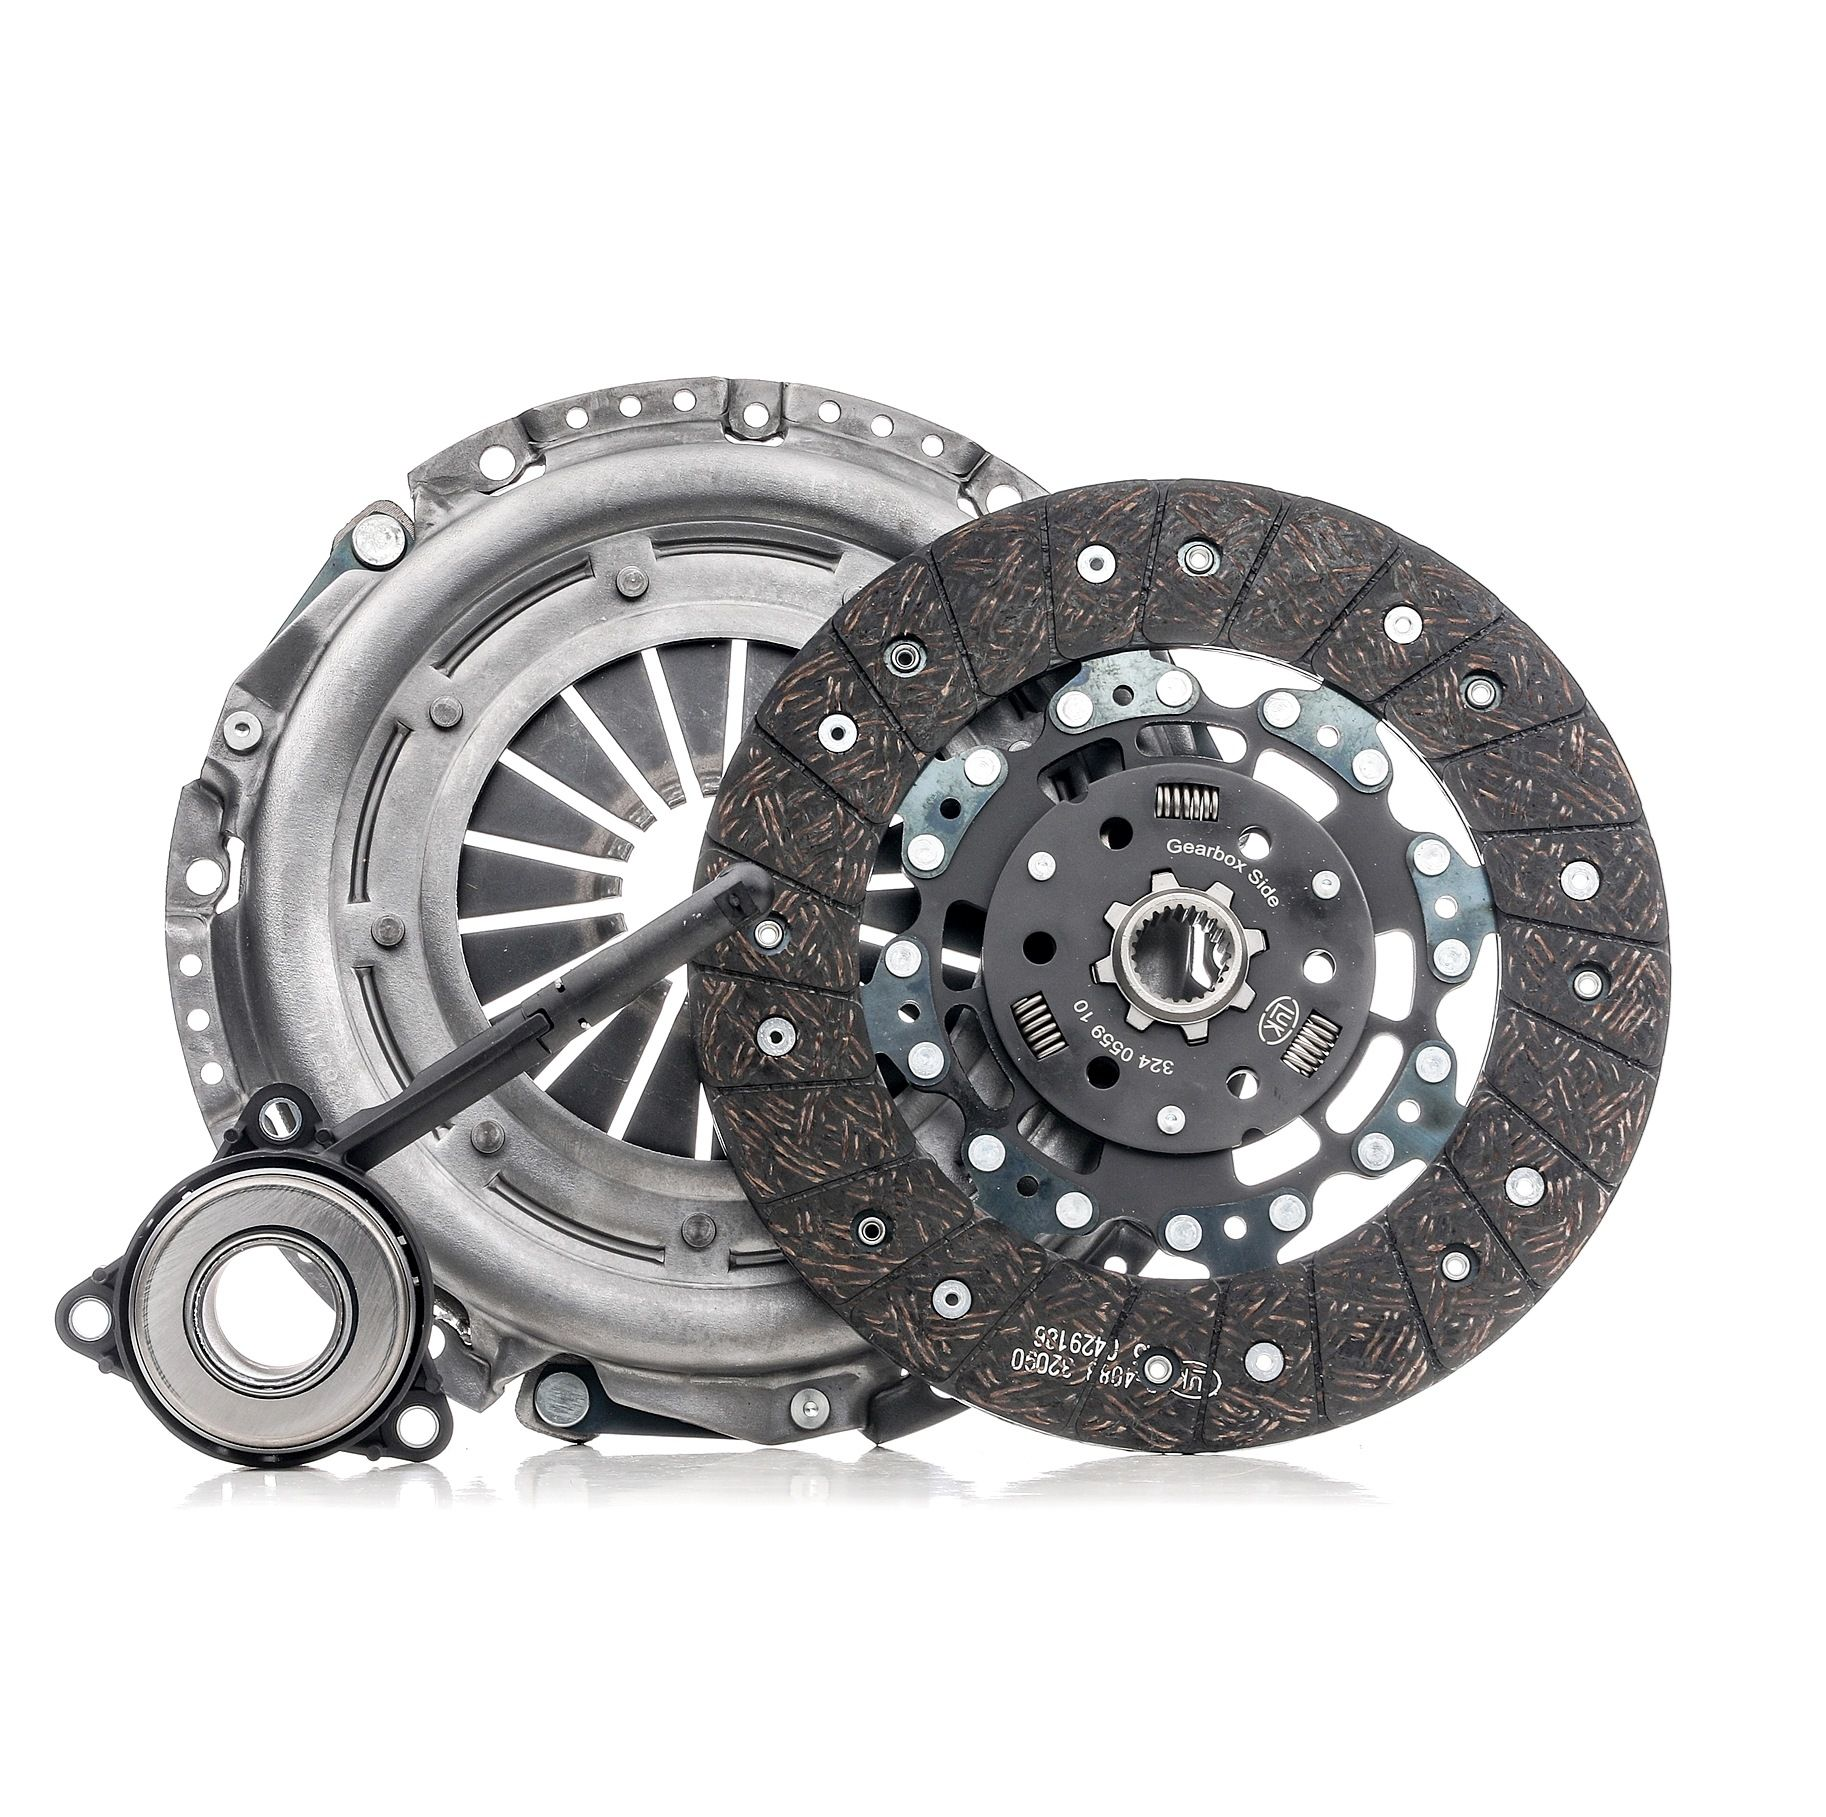 Complete clutch kit LuK 624 3050 34 rating